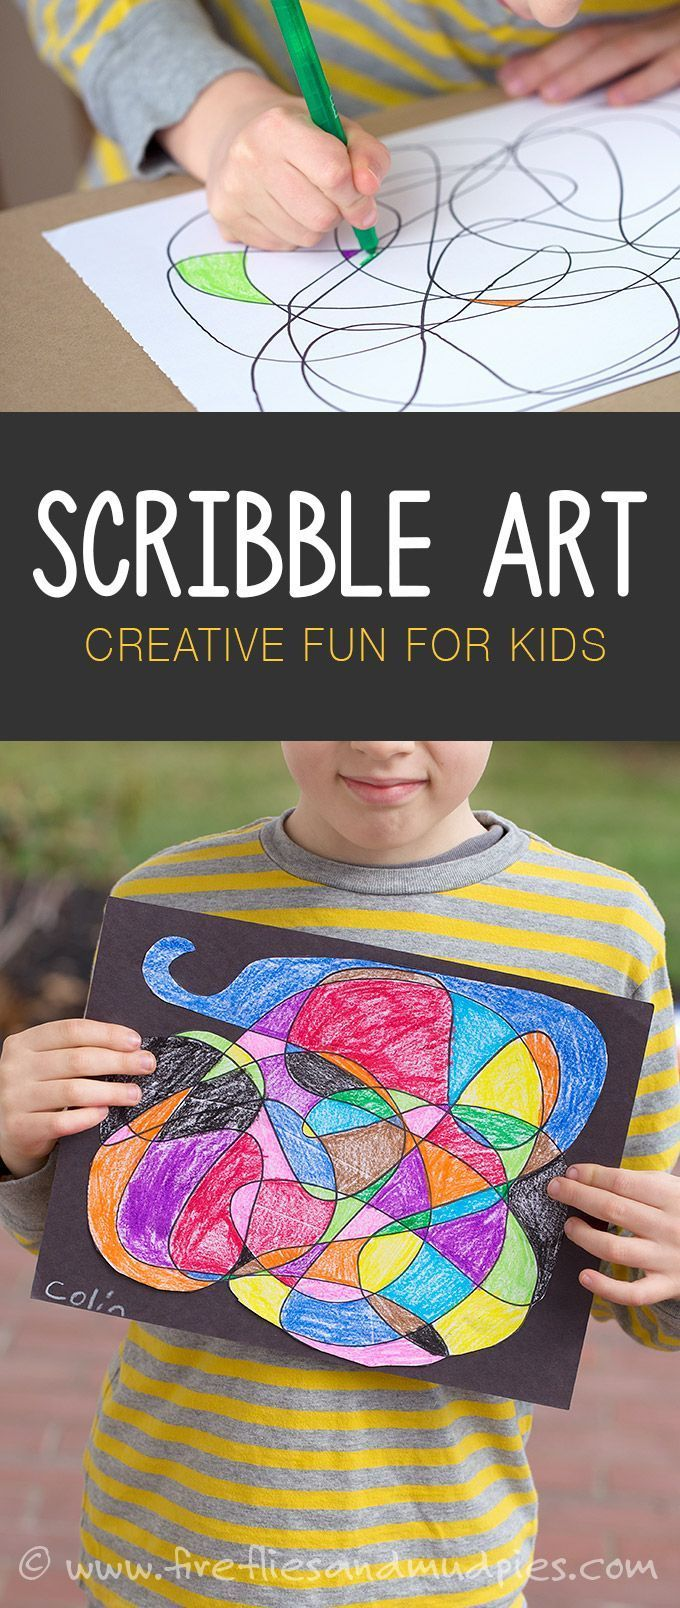 Art for Kids Scribble art is a fun, boredom busting, creative art activity for kids!  Sponsored byScribble art is a fun, boredom busting, creative art activity for kids!  Sponsored by